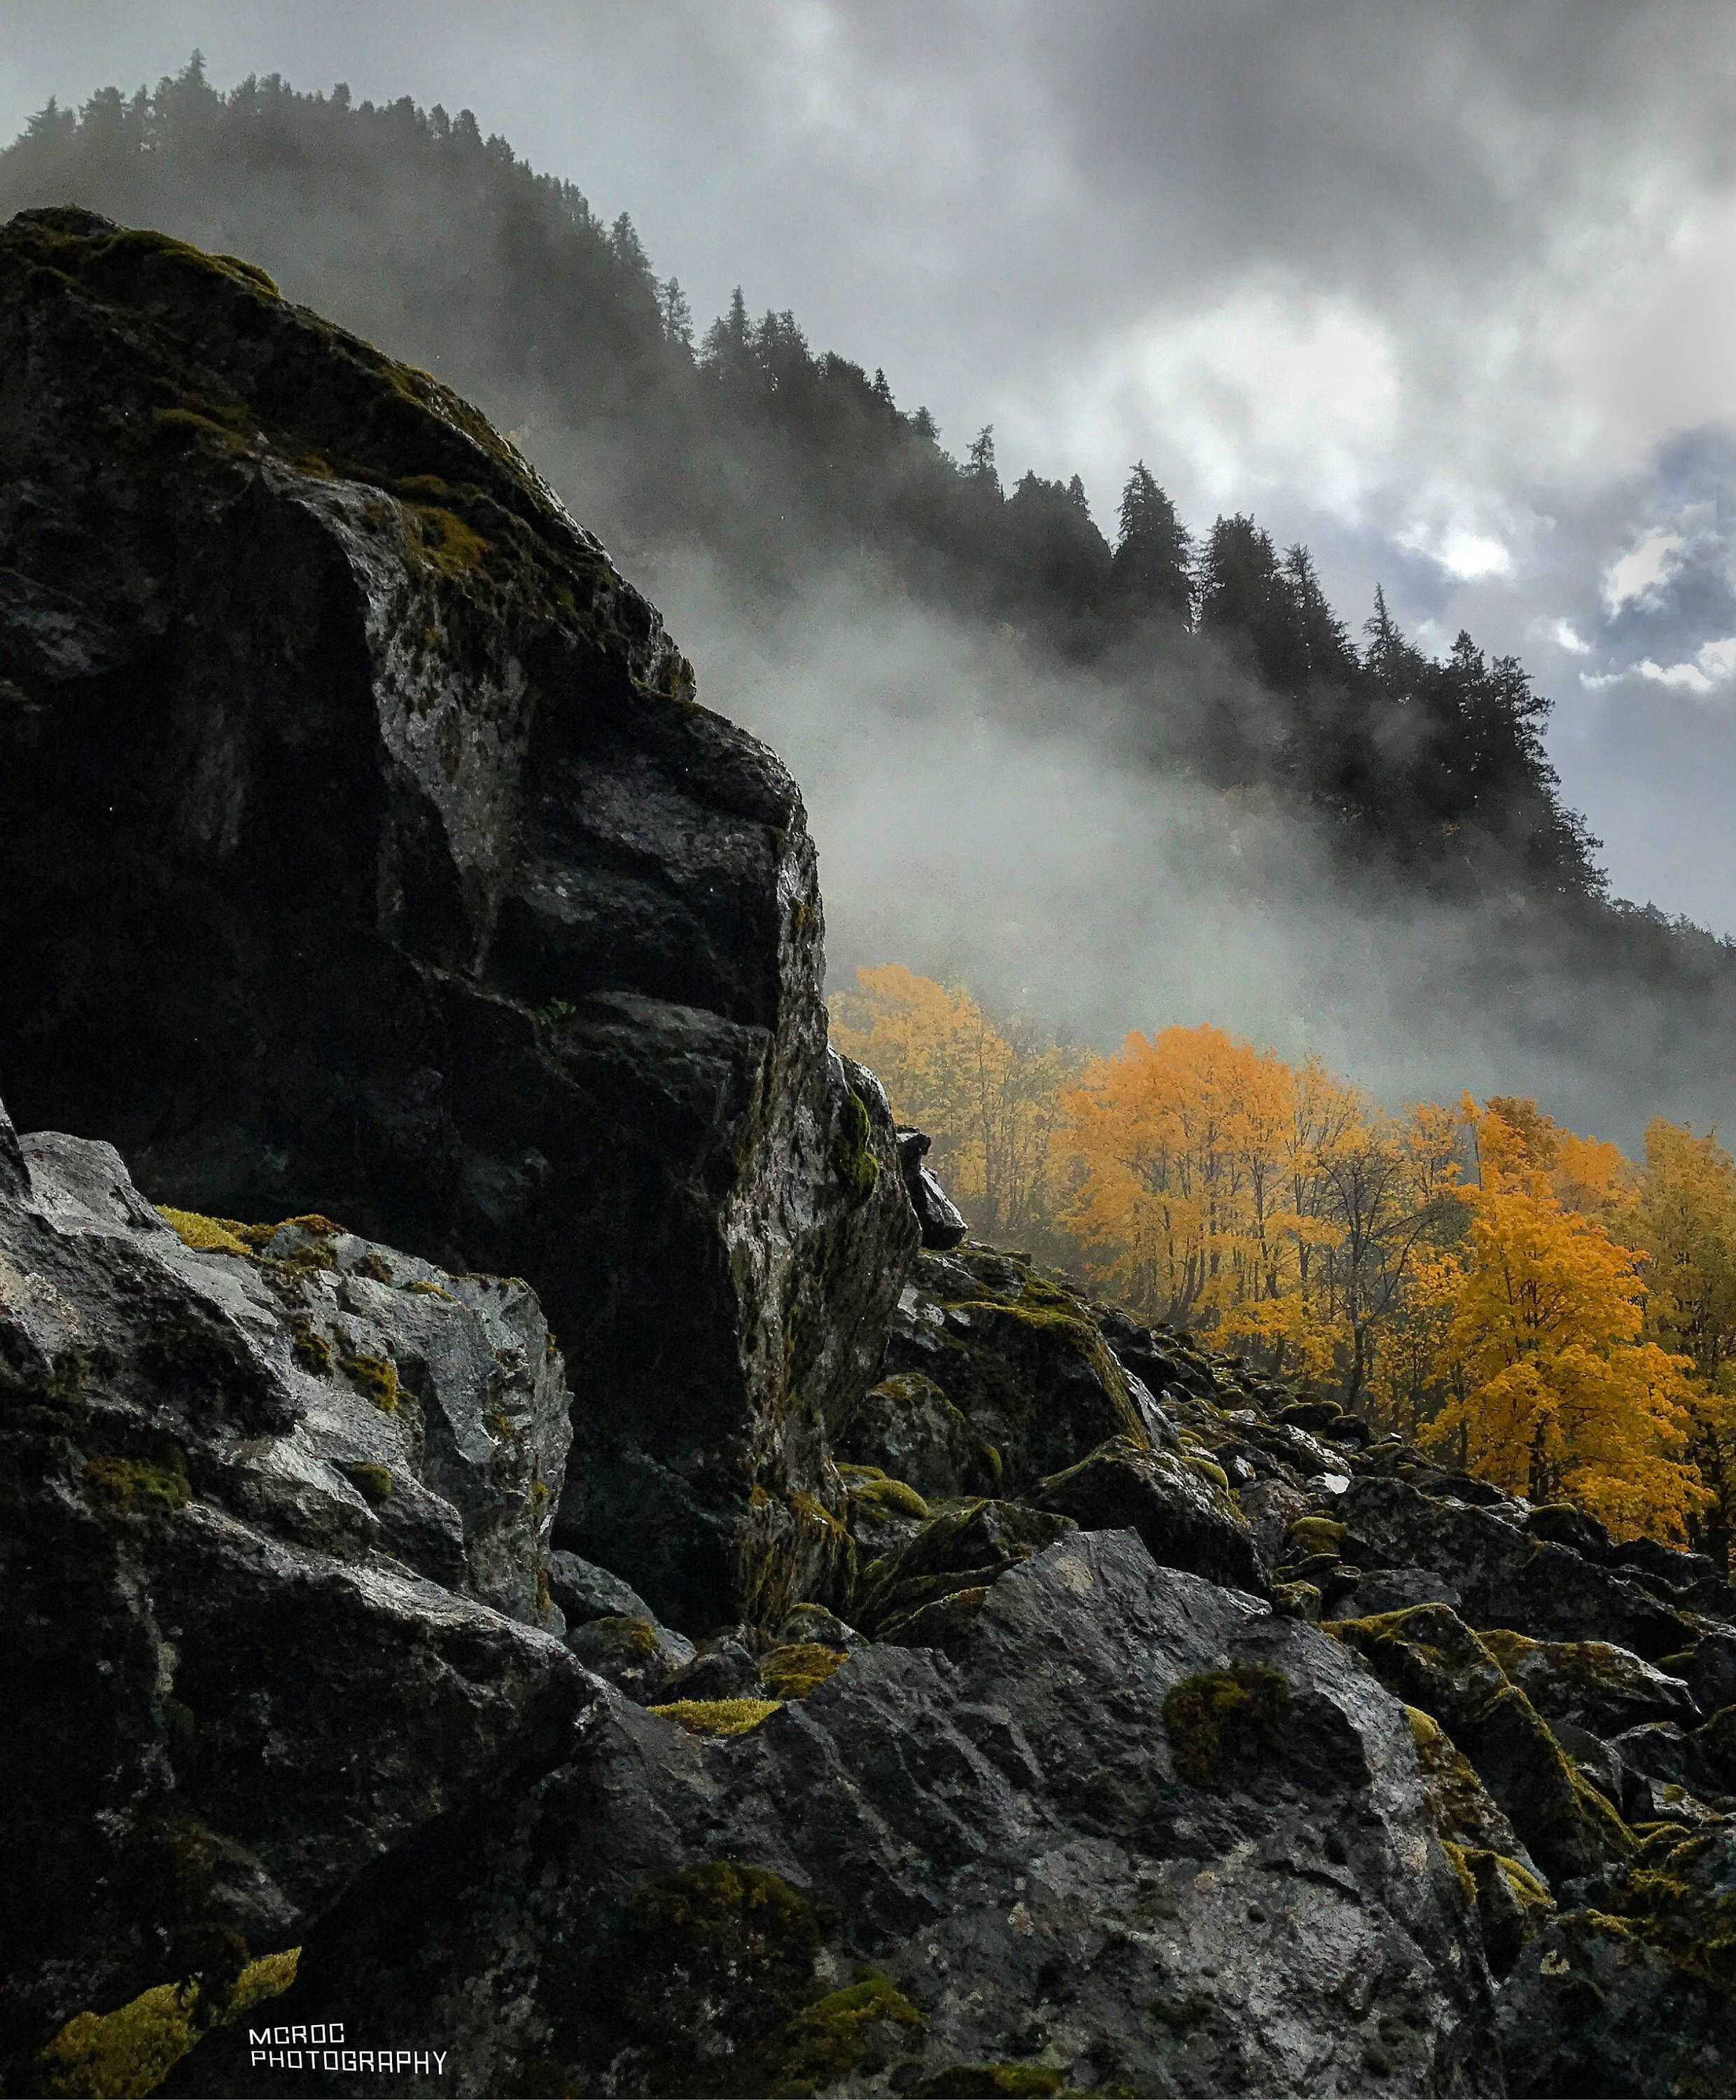 Dramatic Landscape Fine Art Photography Mist And Mountains Hiking And Landscape Photography Tips Beautiful Photography Nature Fine Art Landscape Photography